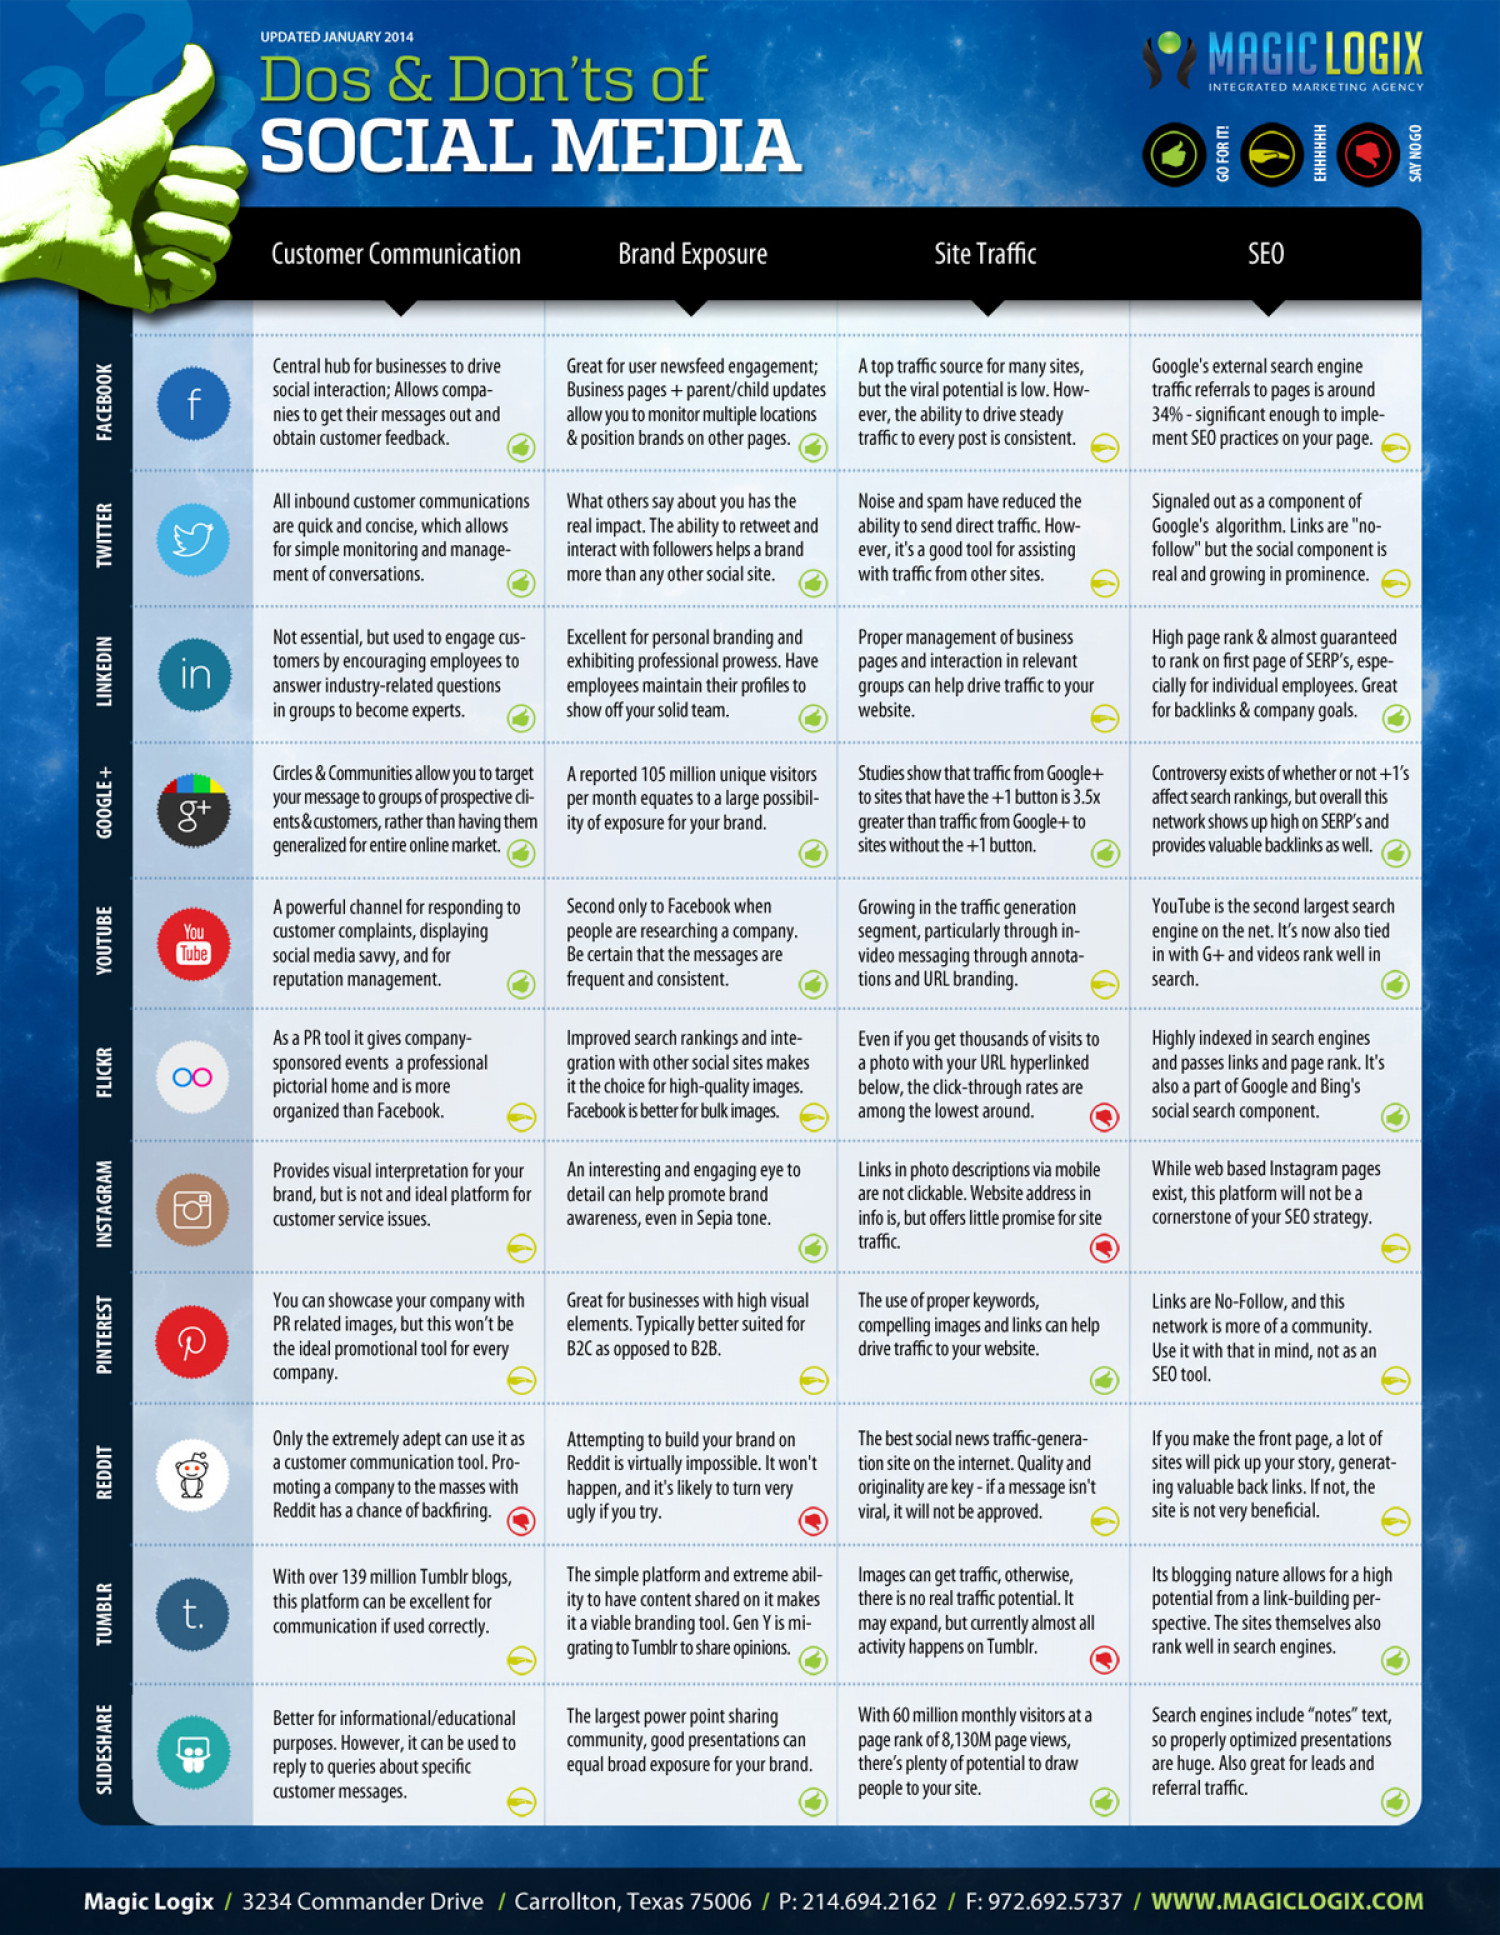 2014 Social Media Do's and Don'ts Infographic